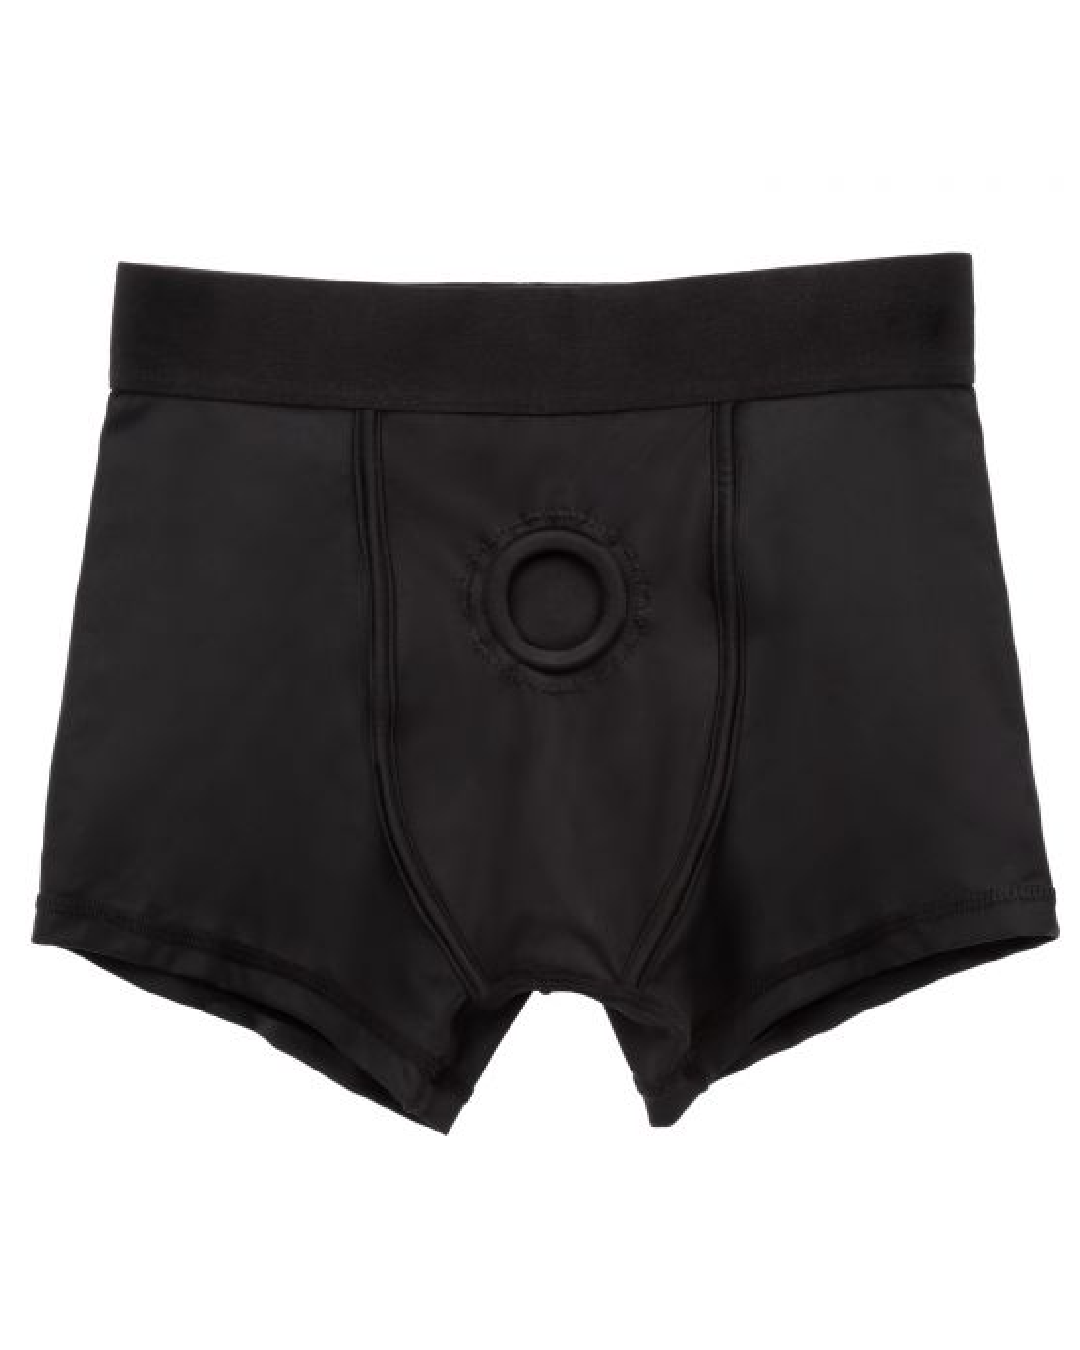 Boundless Strap-on Boxer Brief - S/M